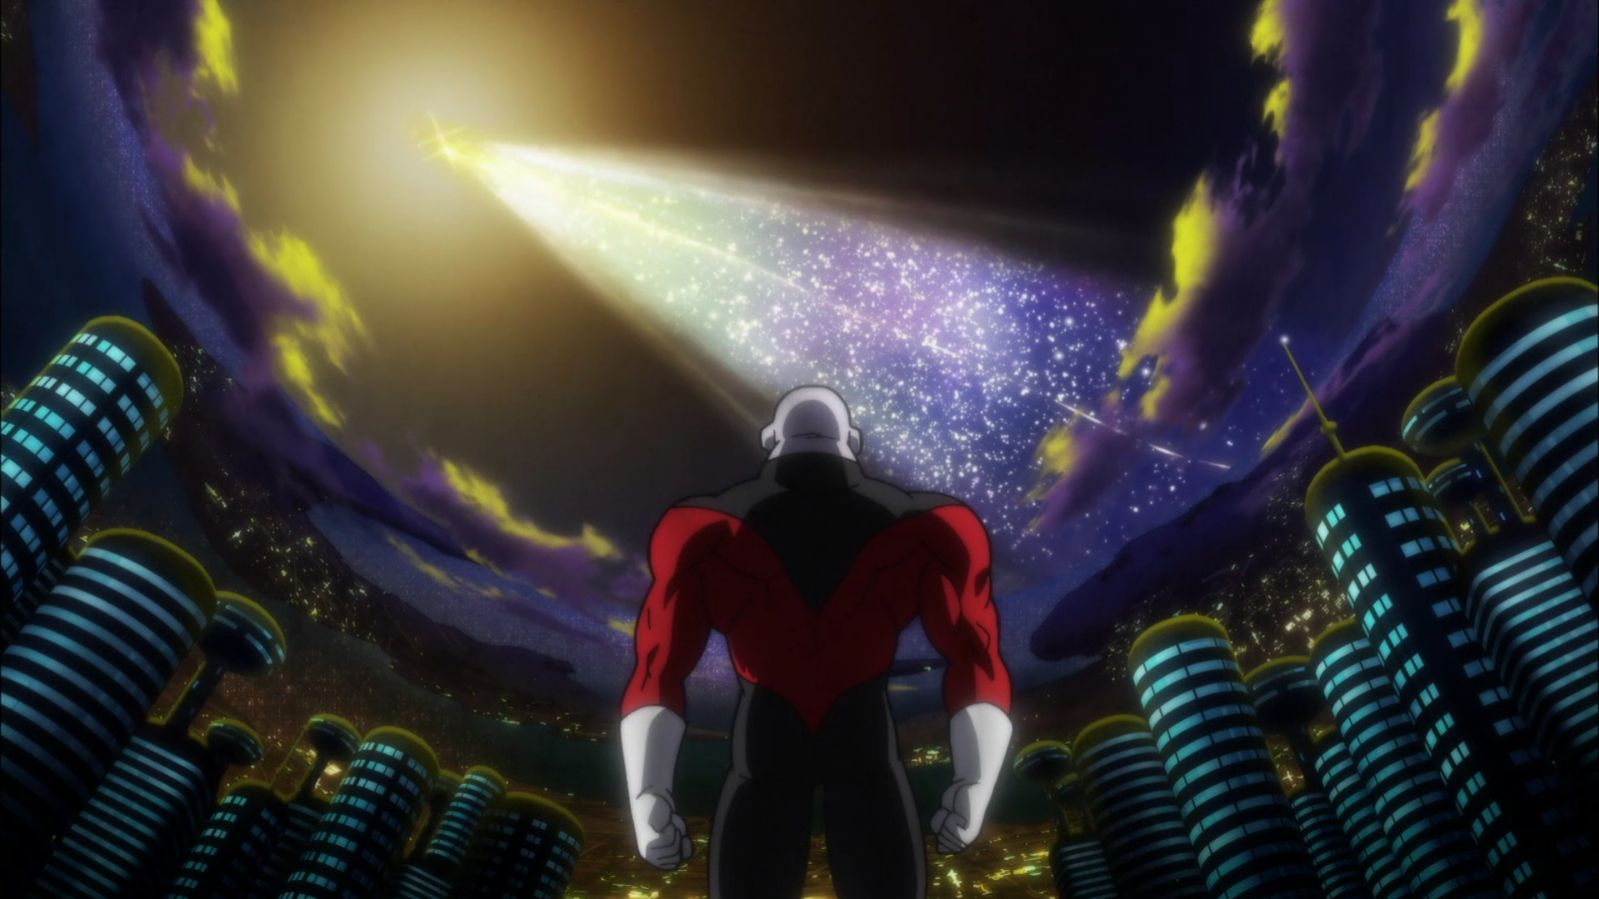 Dragon Ball Super análisis episodio 131 final